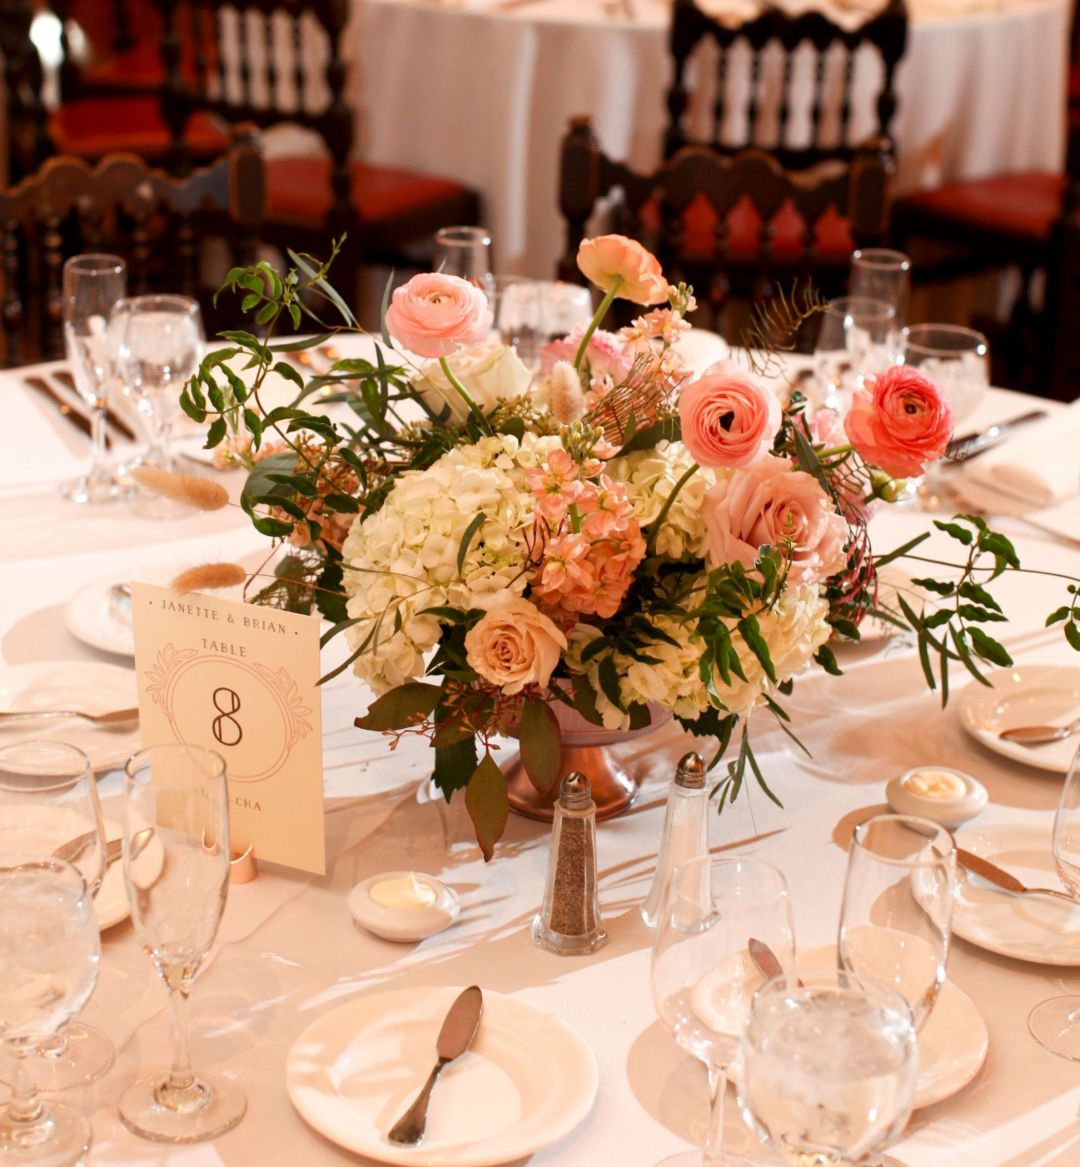 Formal wedding table setting